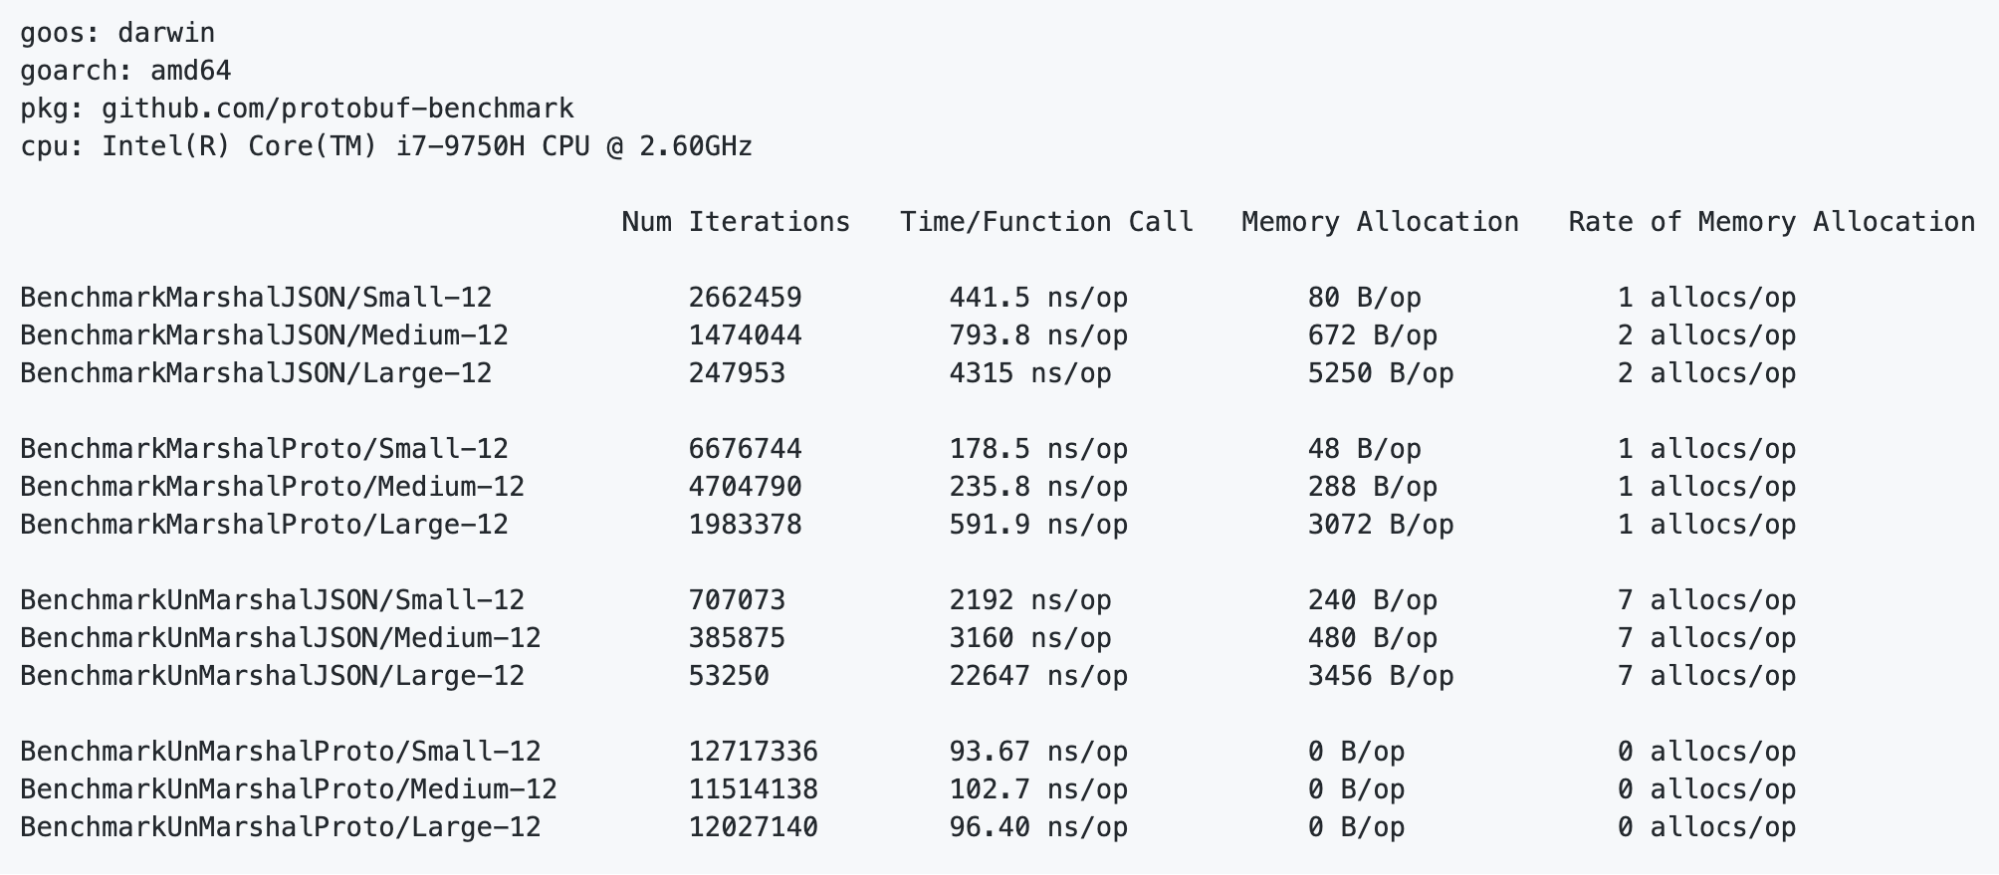 Protobuf performs better in small, medium, and large data sizes.